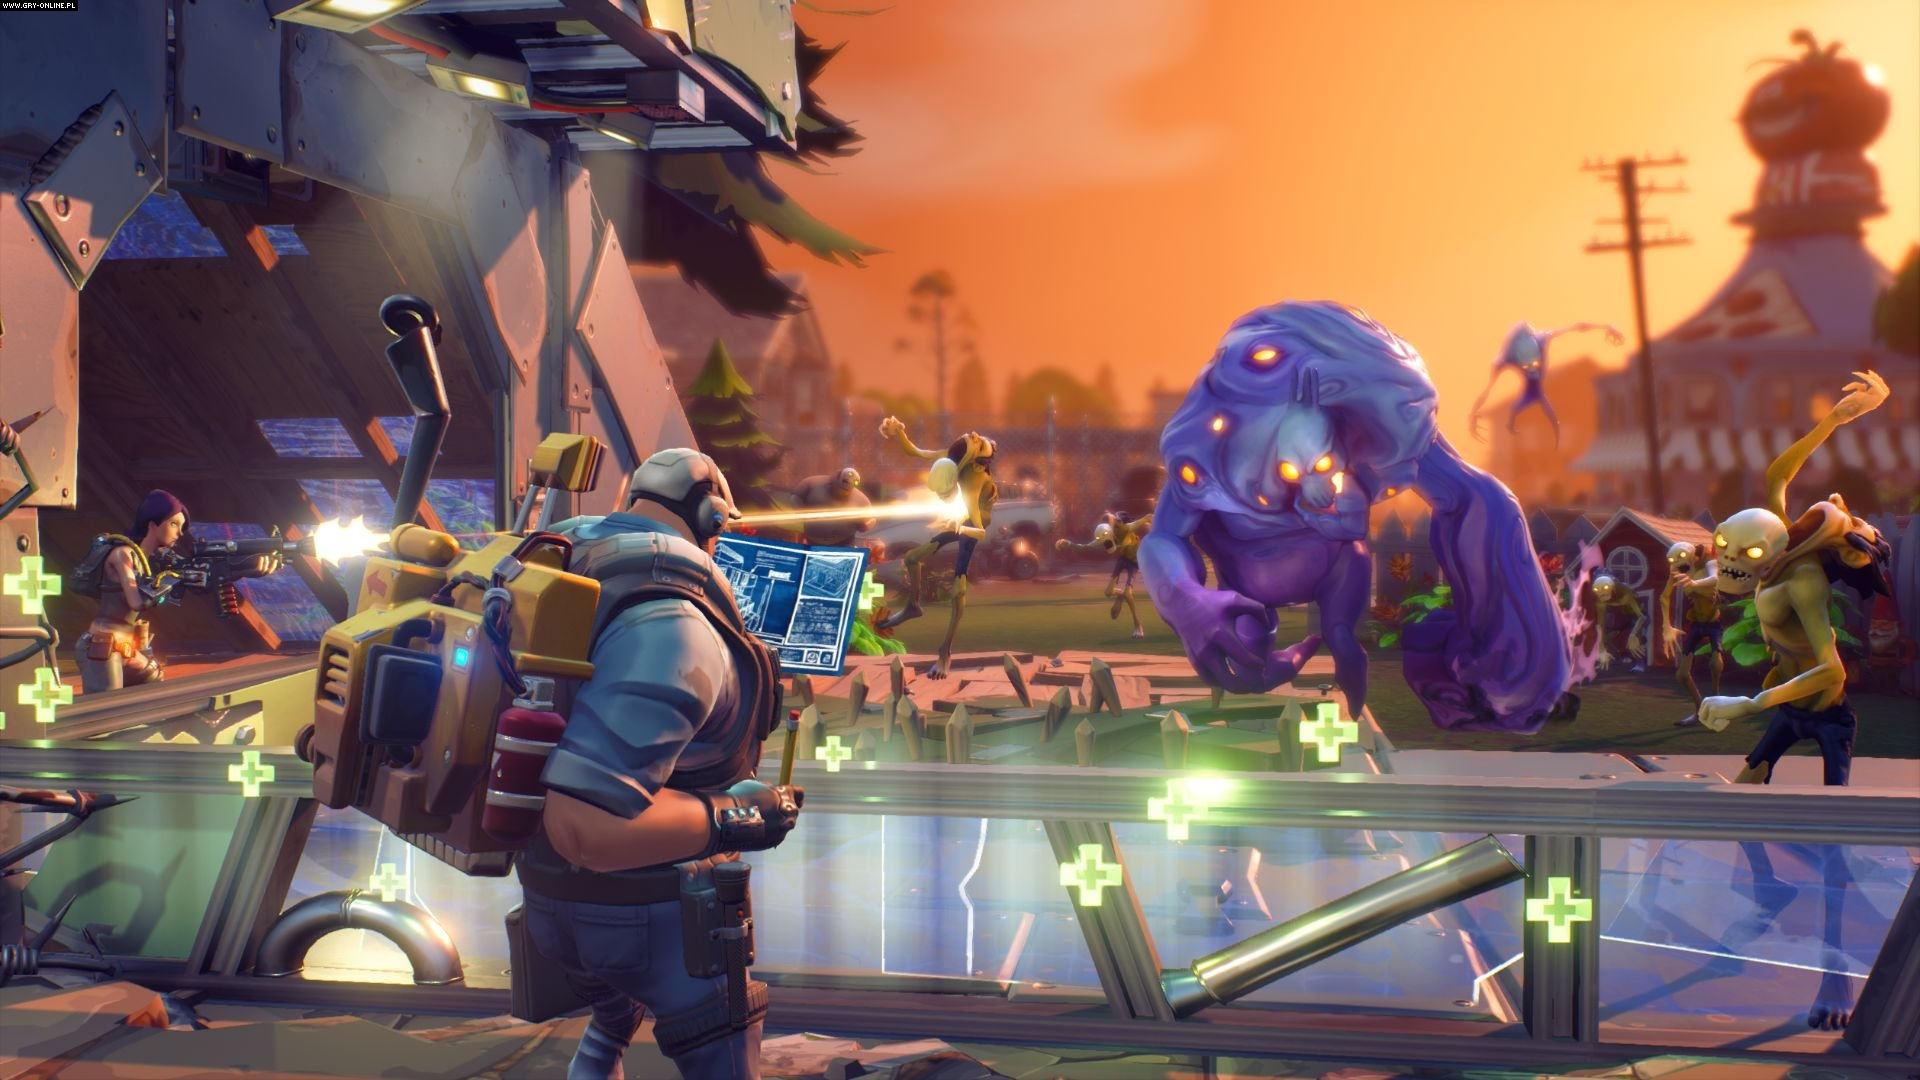 Fortnite PC Gry Screen 33/50, Epic Games